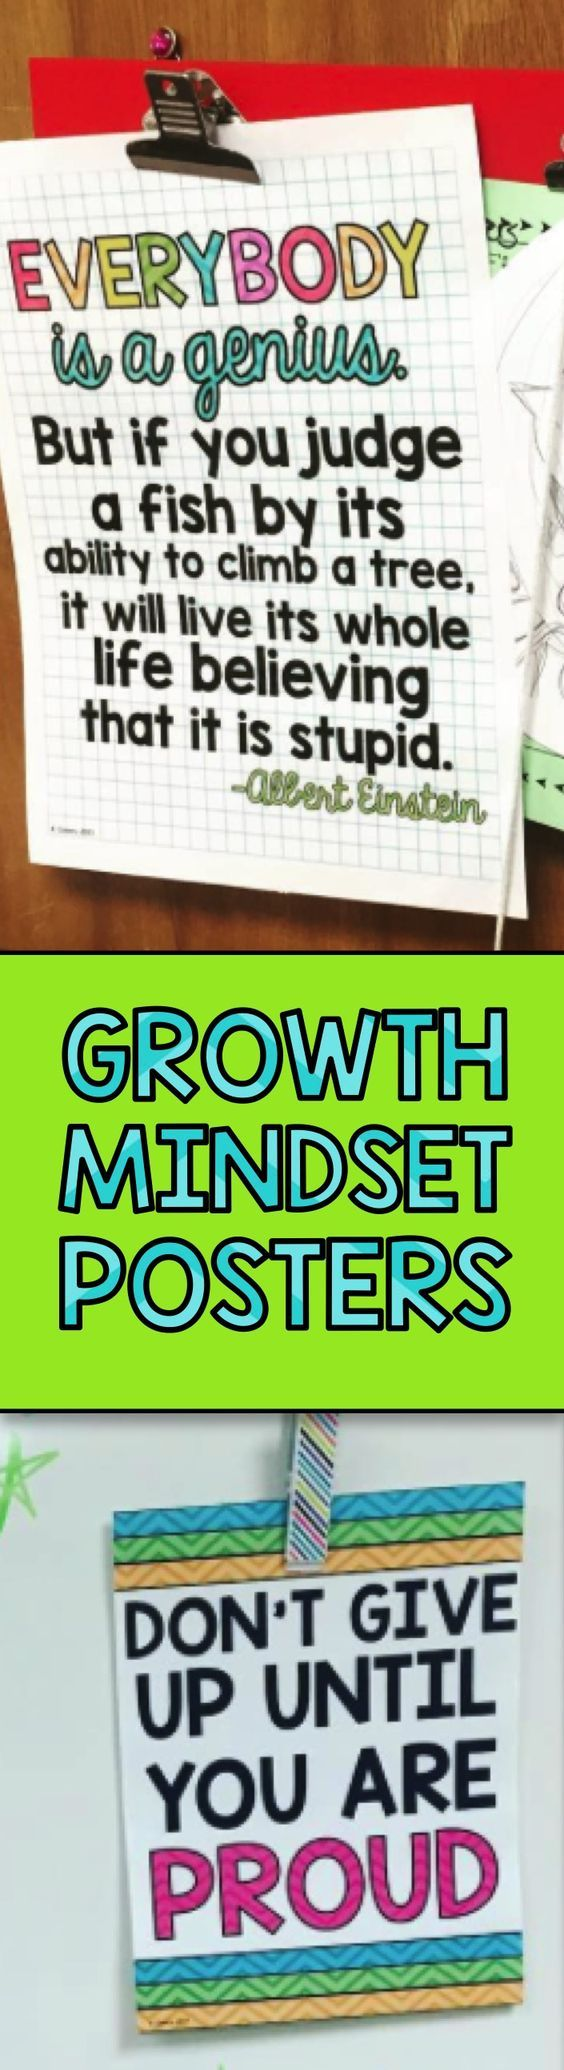 Growth Mindset Posters for the classroom                                                                                                                                                     More